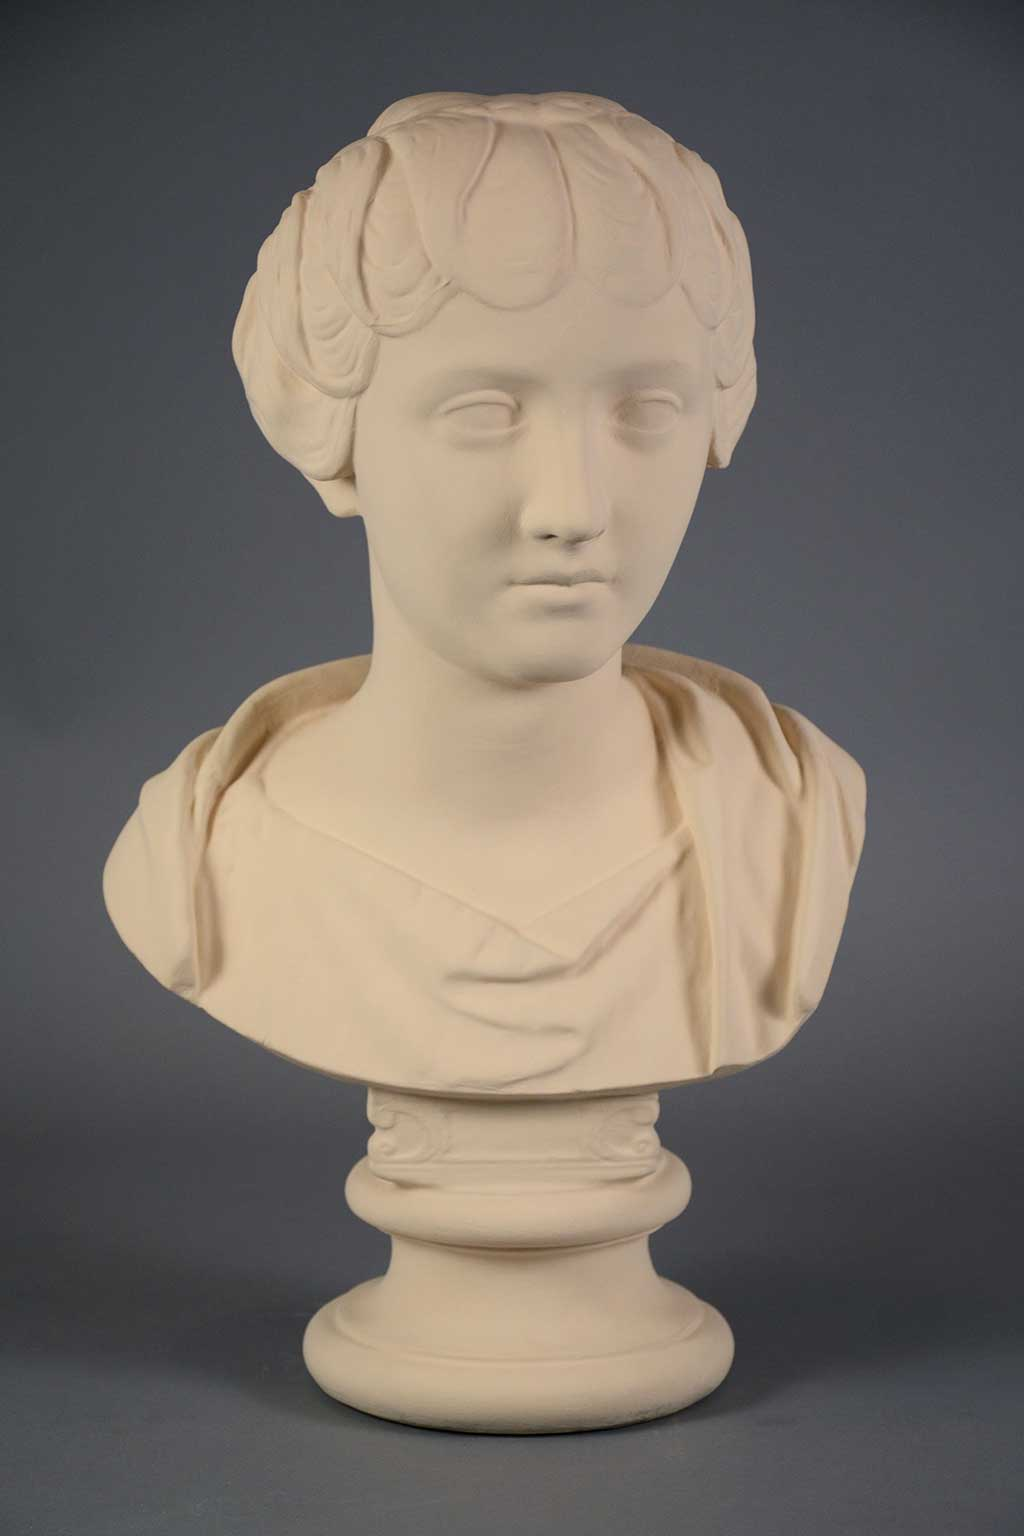 plaster cast of a young man